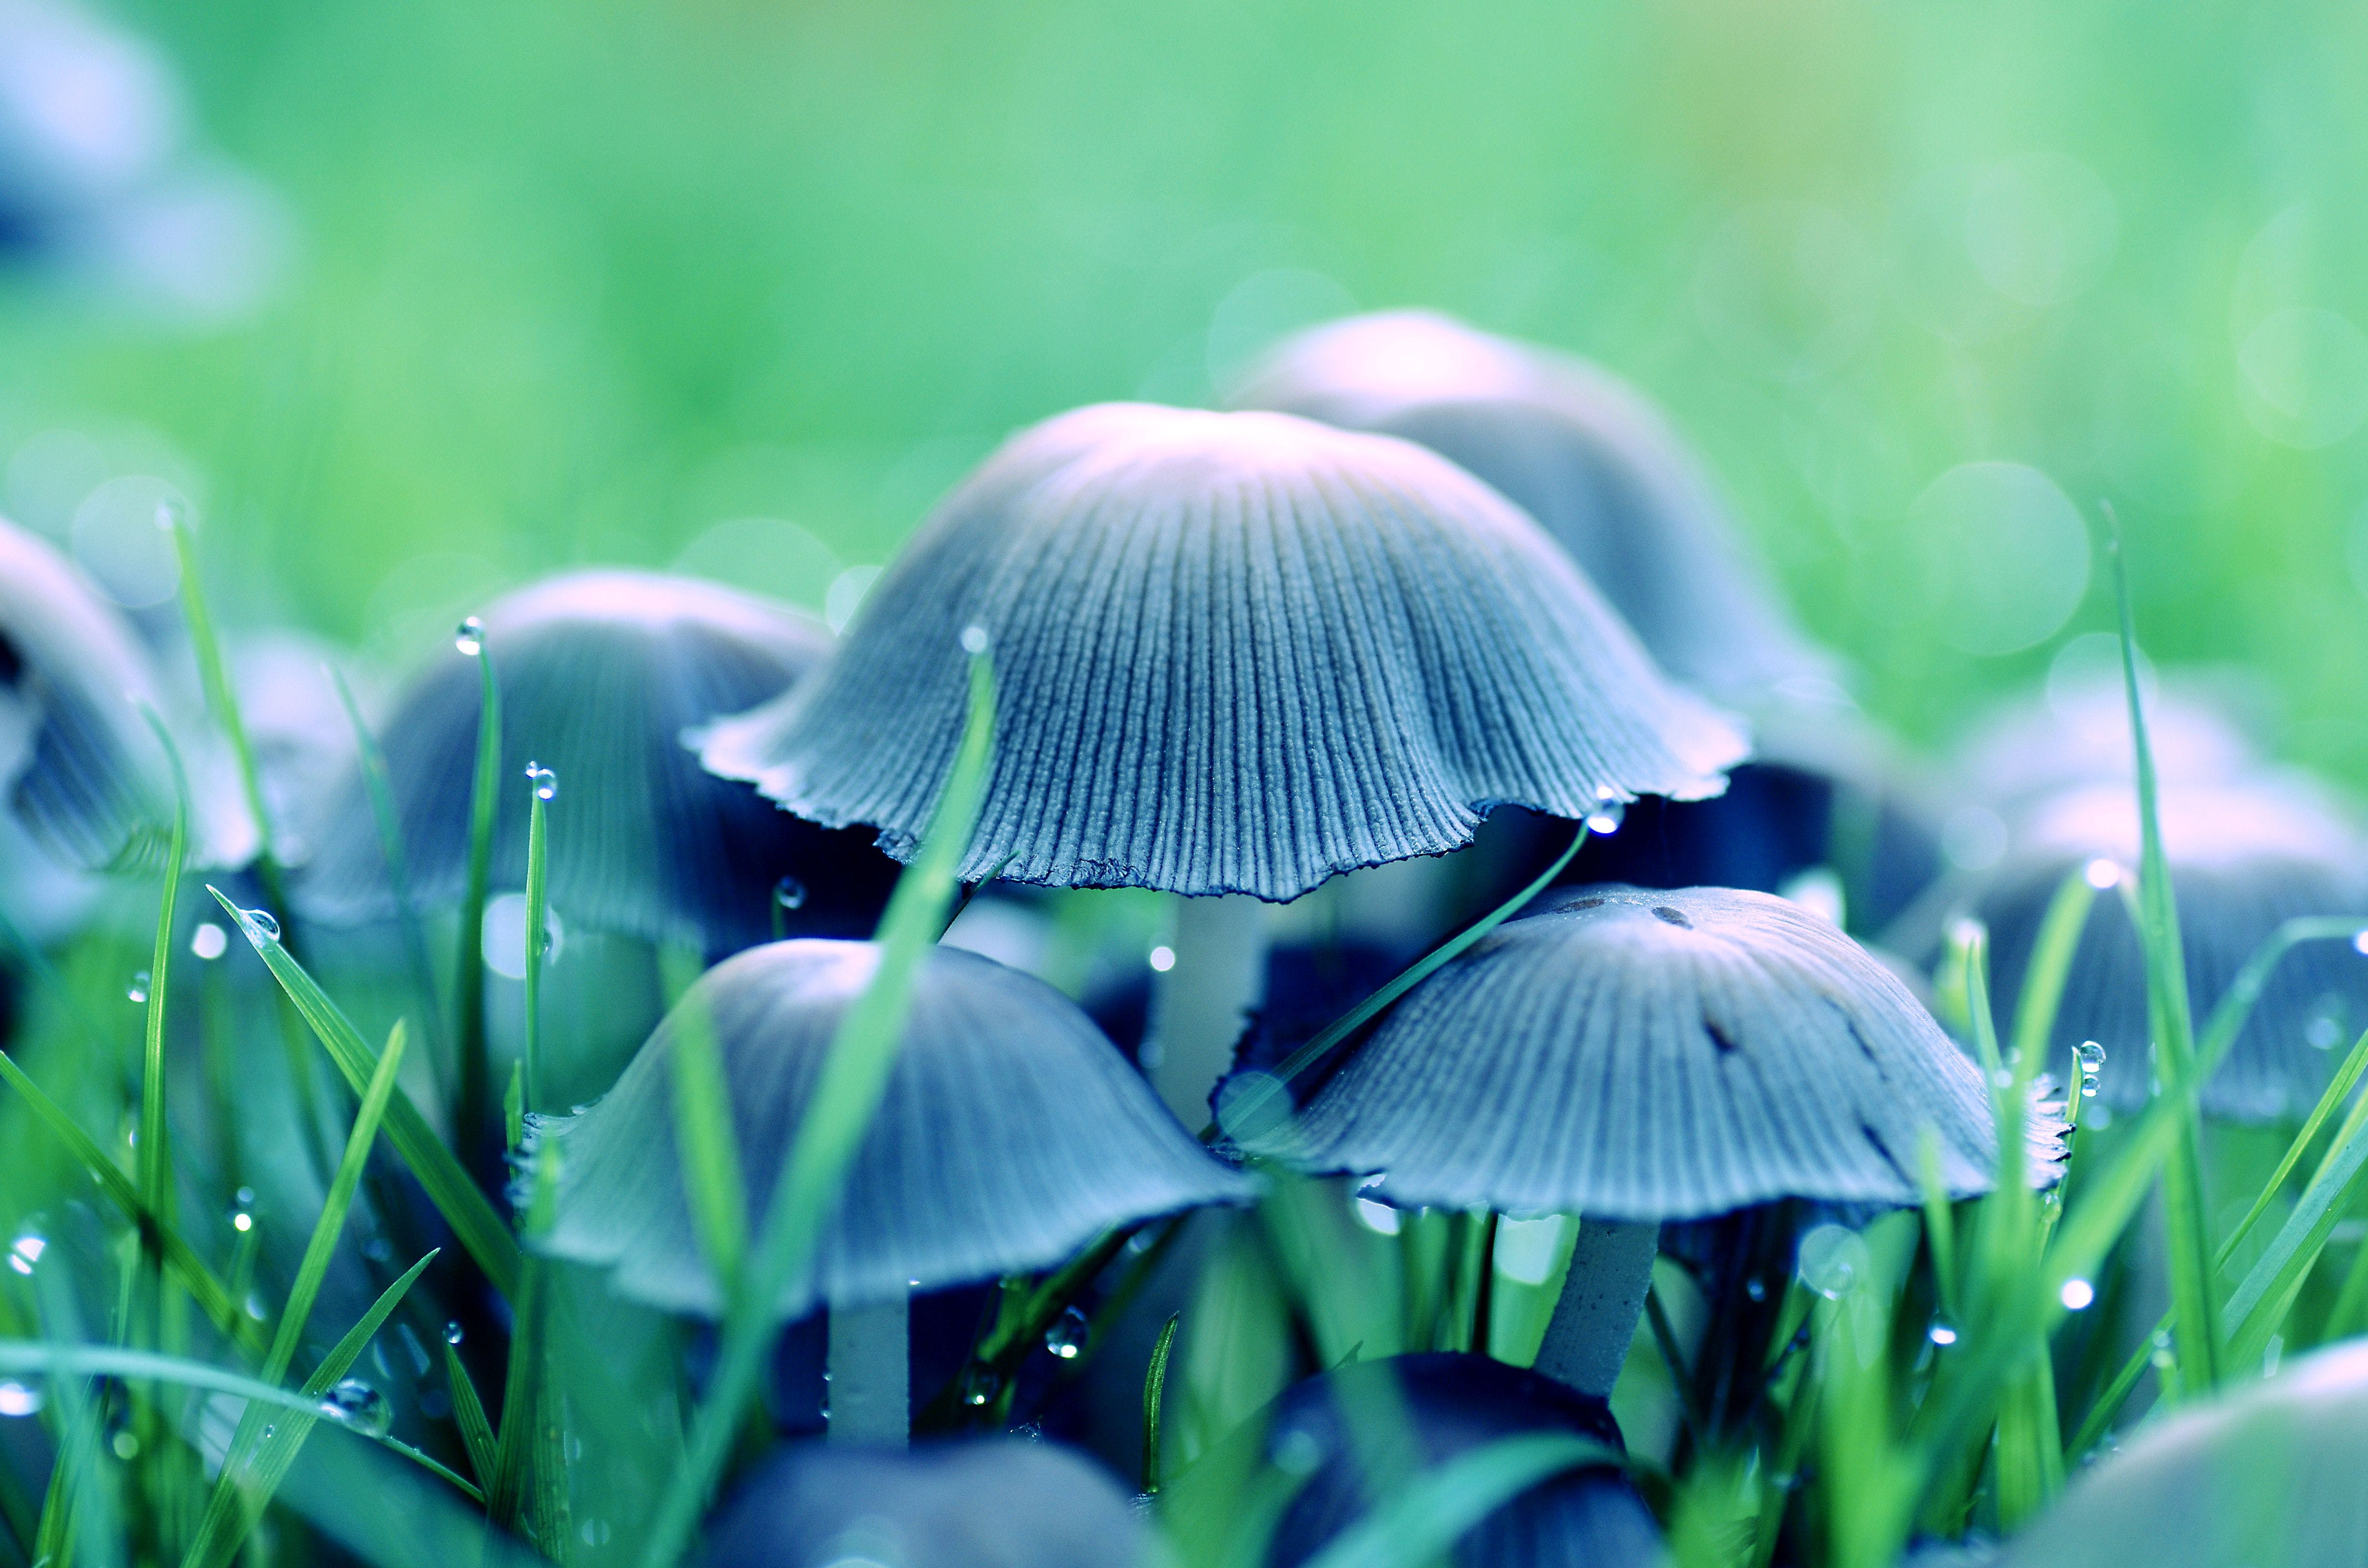 Mushroom in Middle of Grass